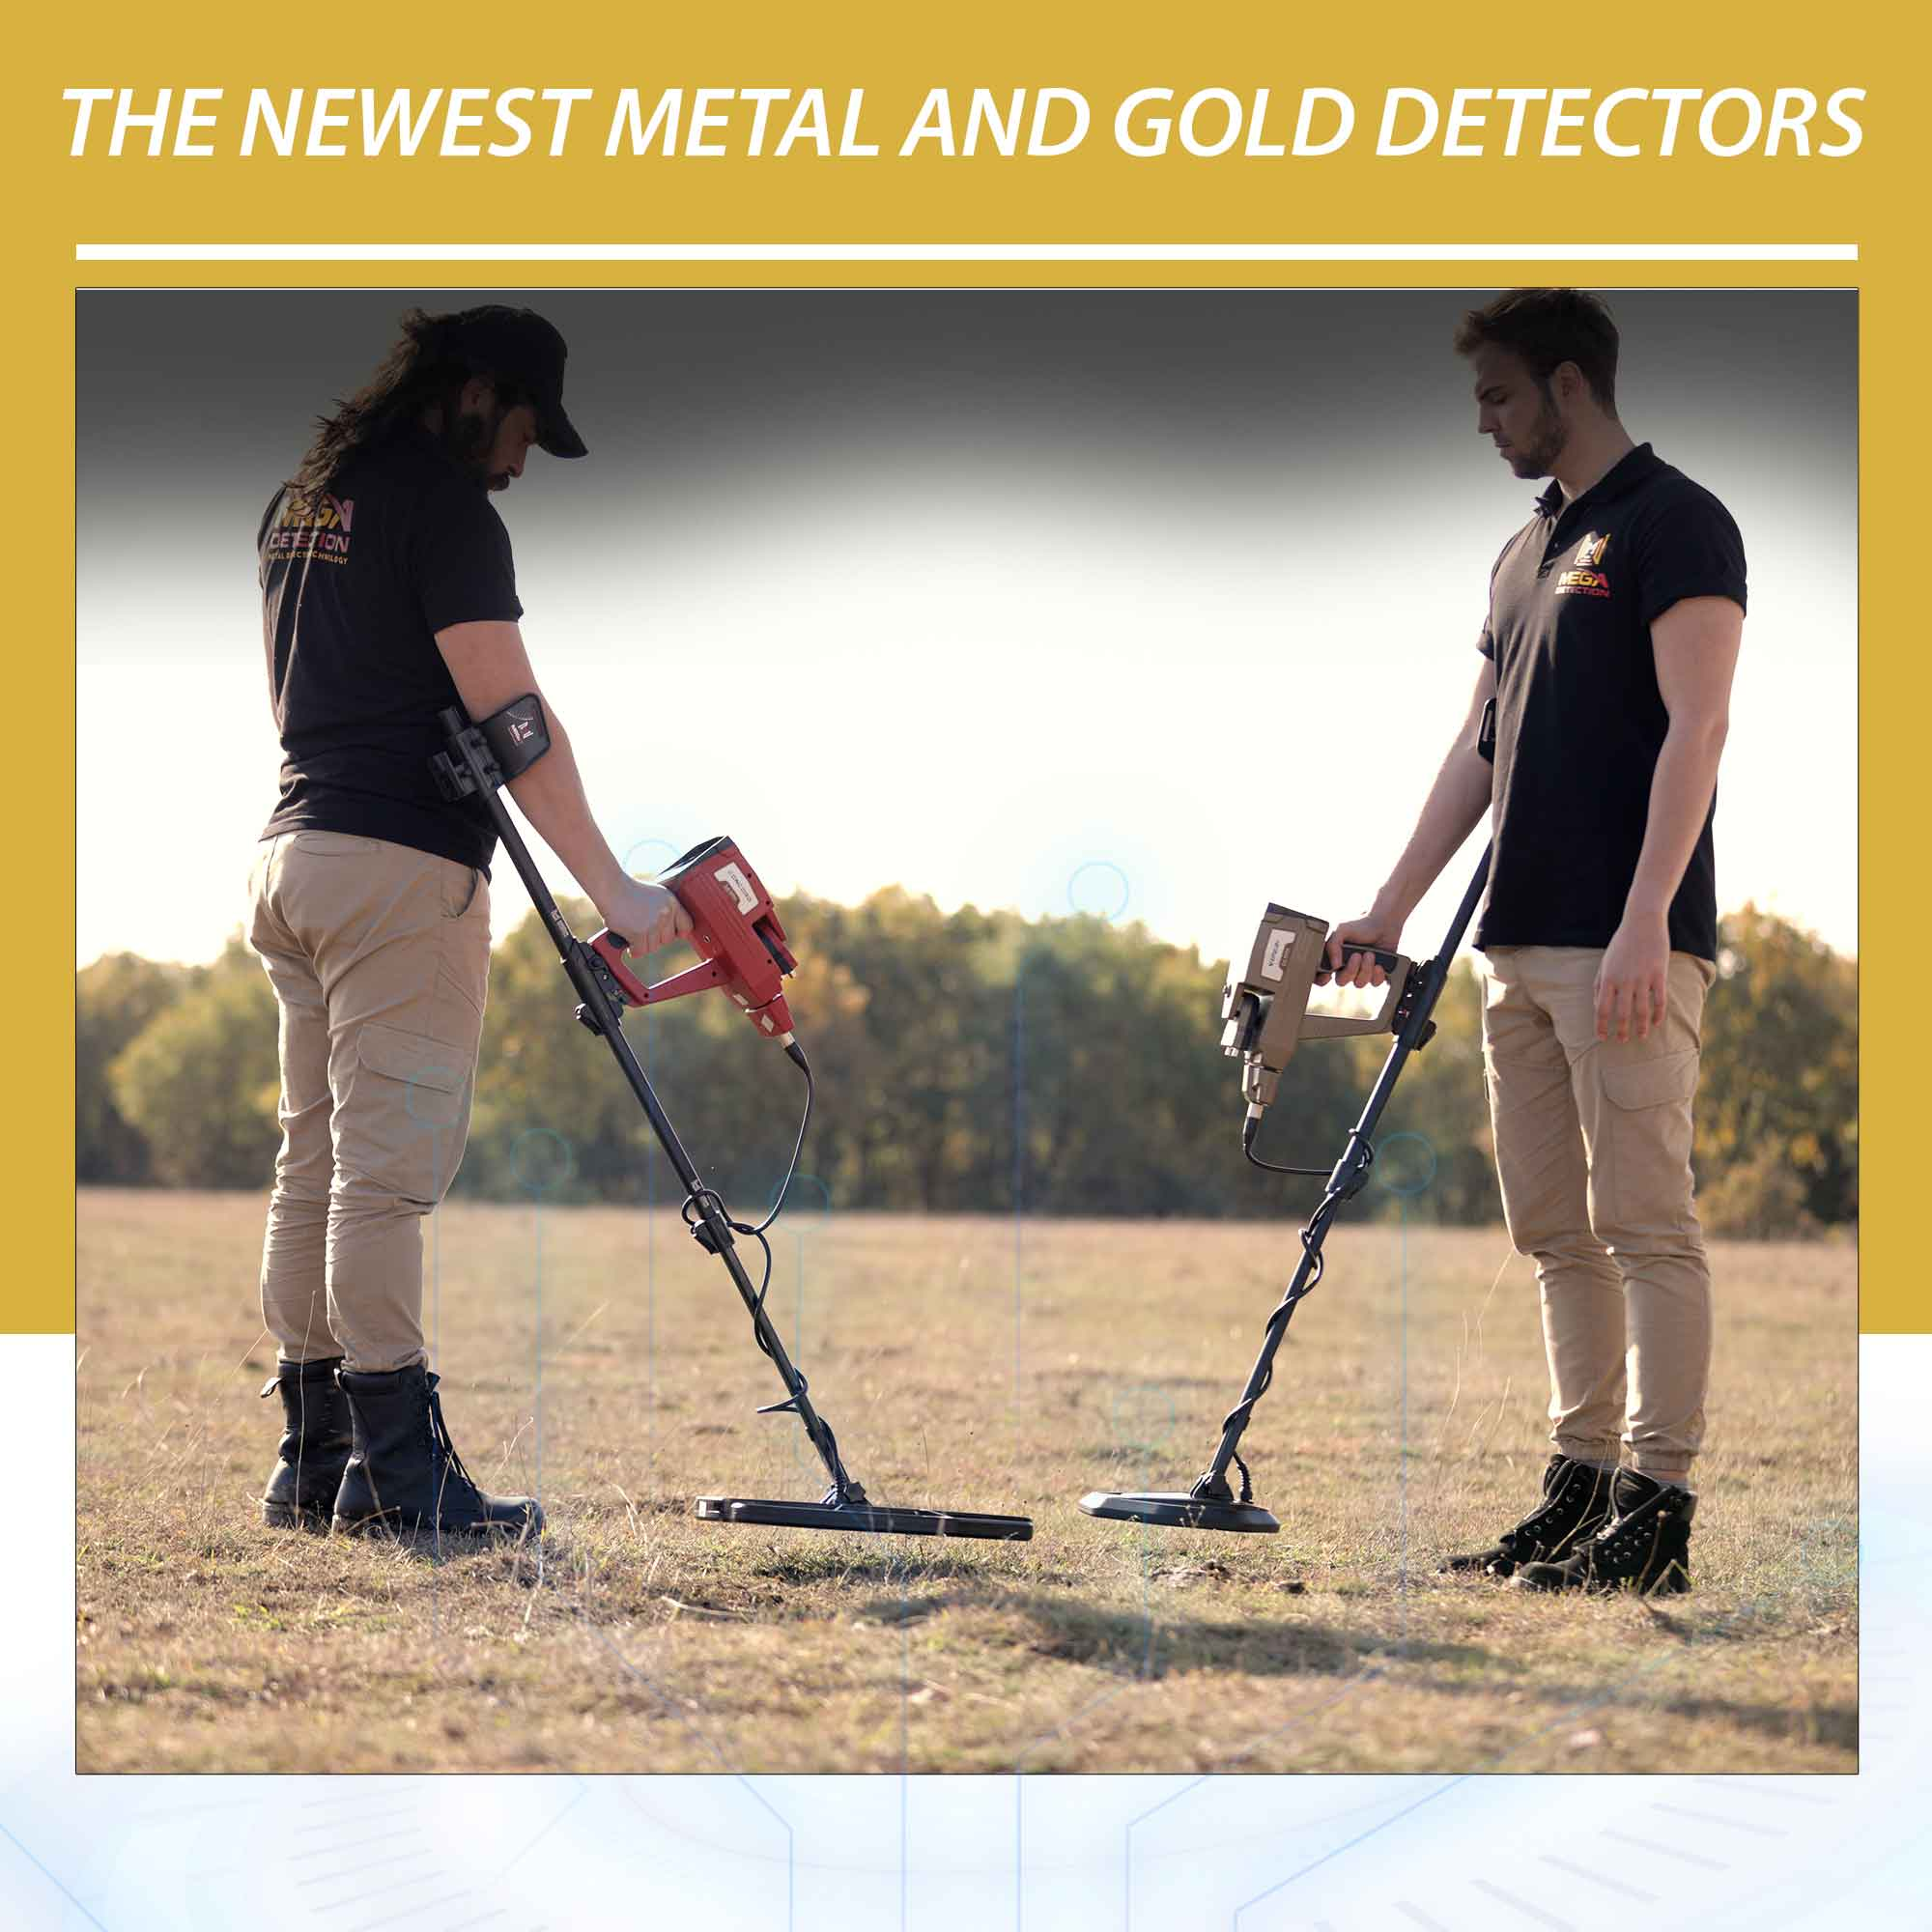 The newest metal and gold detectors 2021